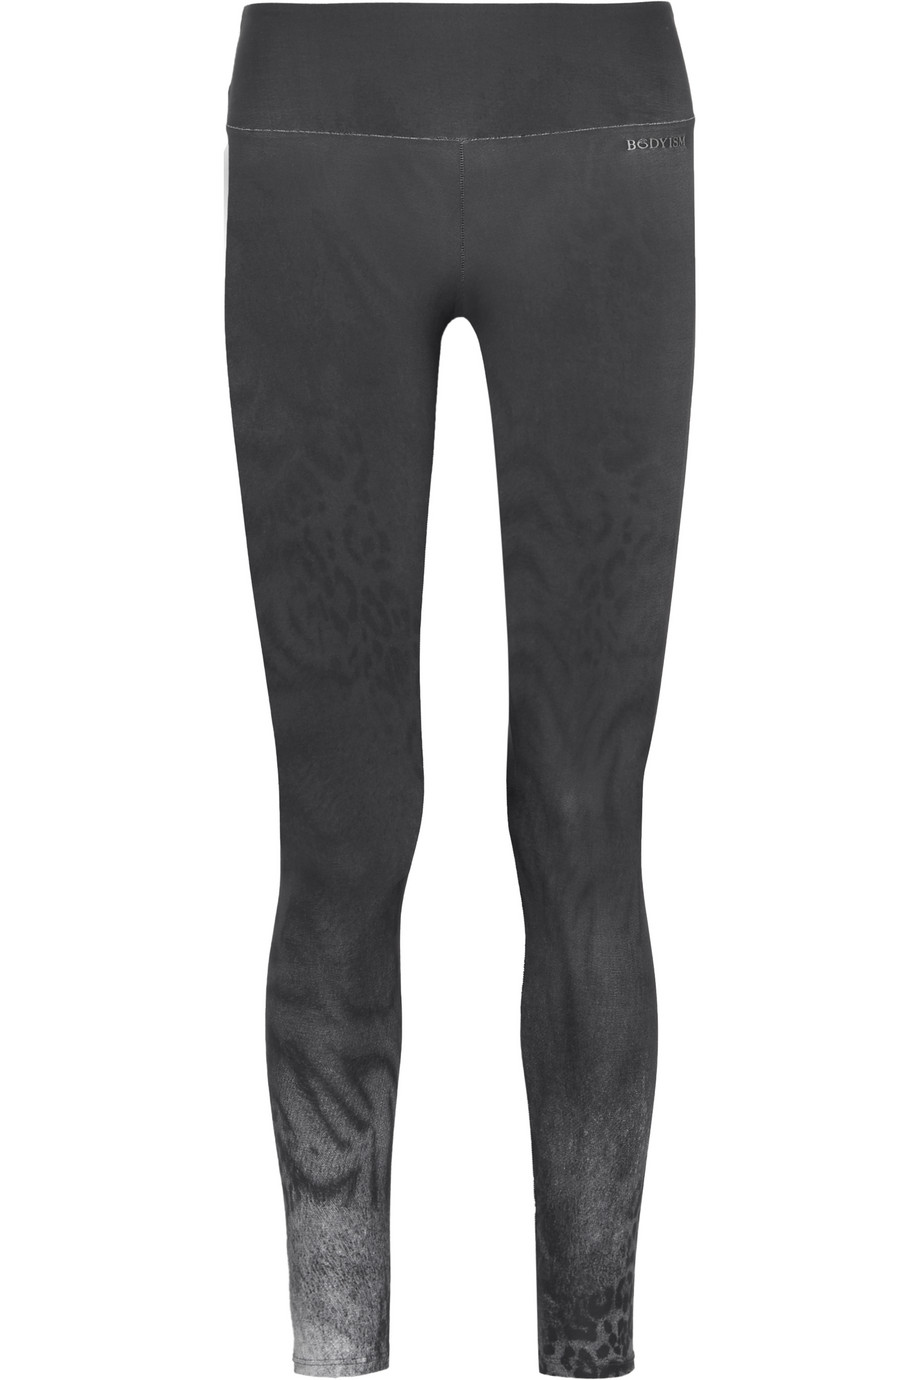 Bodyism I Am Fierce Printed Stretch-Jersey Leggings, Anthracite, Women's